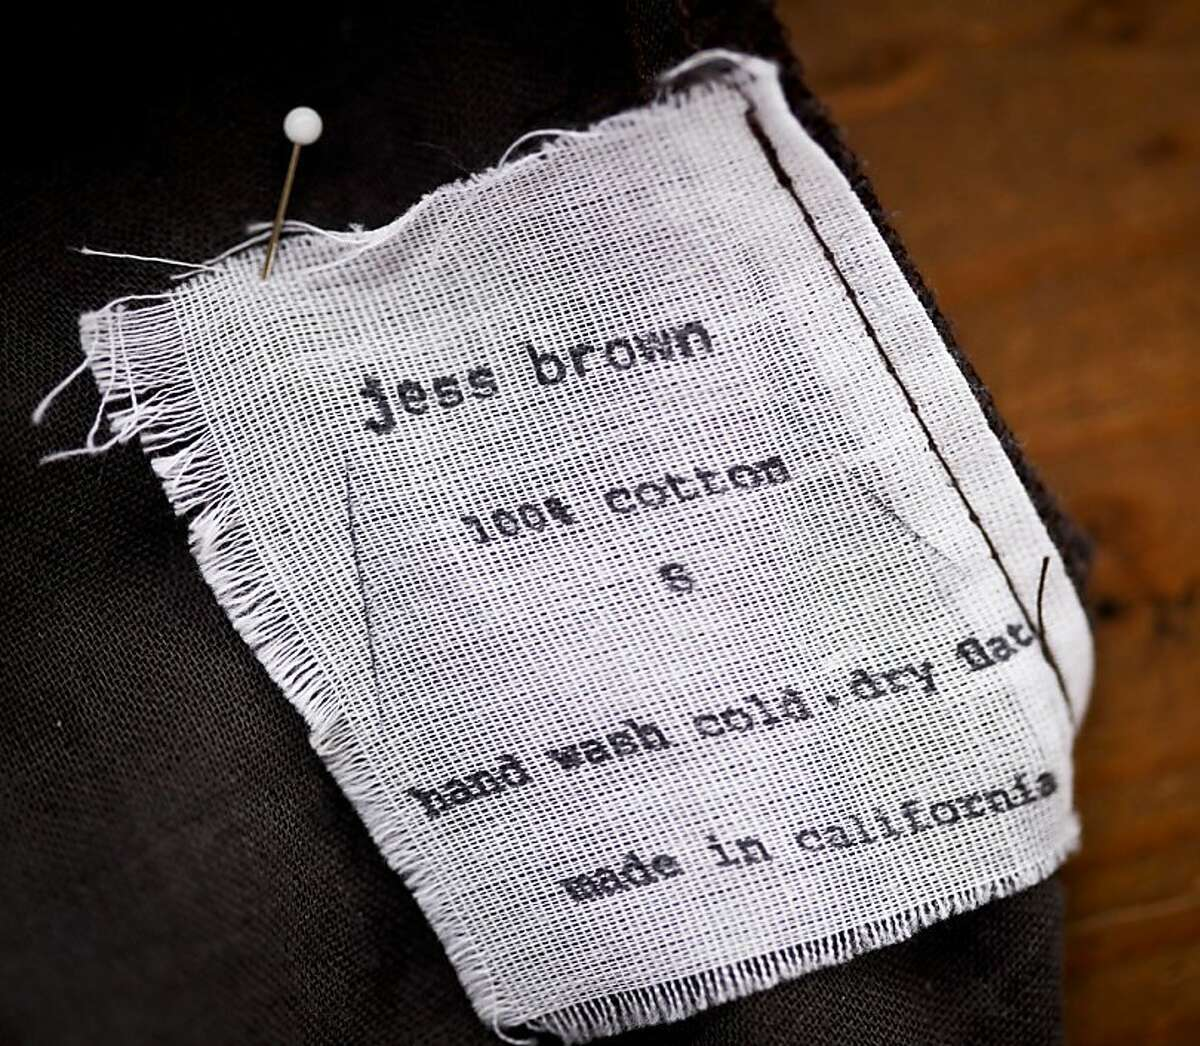 Designer Jess Brown's label is seen on Thursday, Oct. 4, 2012 in her Petaluma, Calif., home studio.